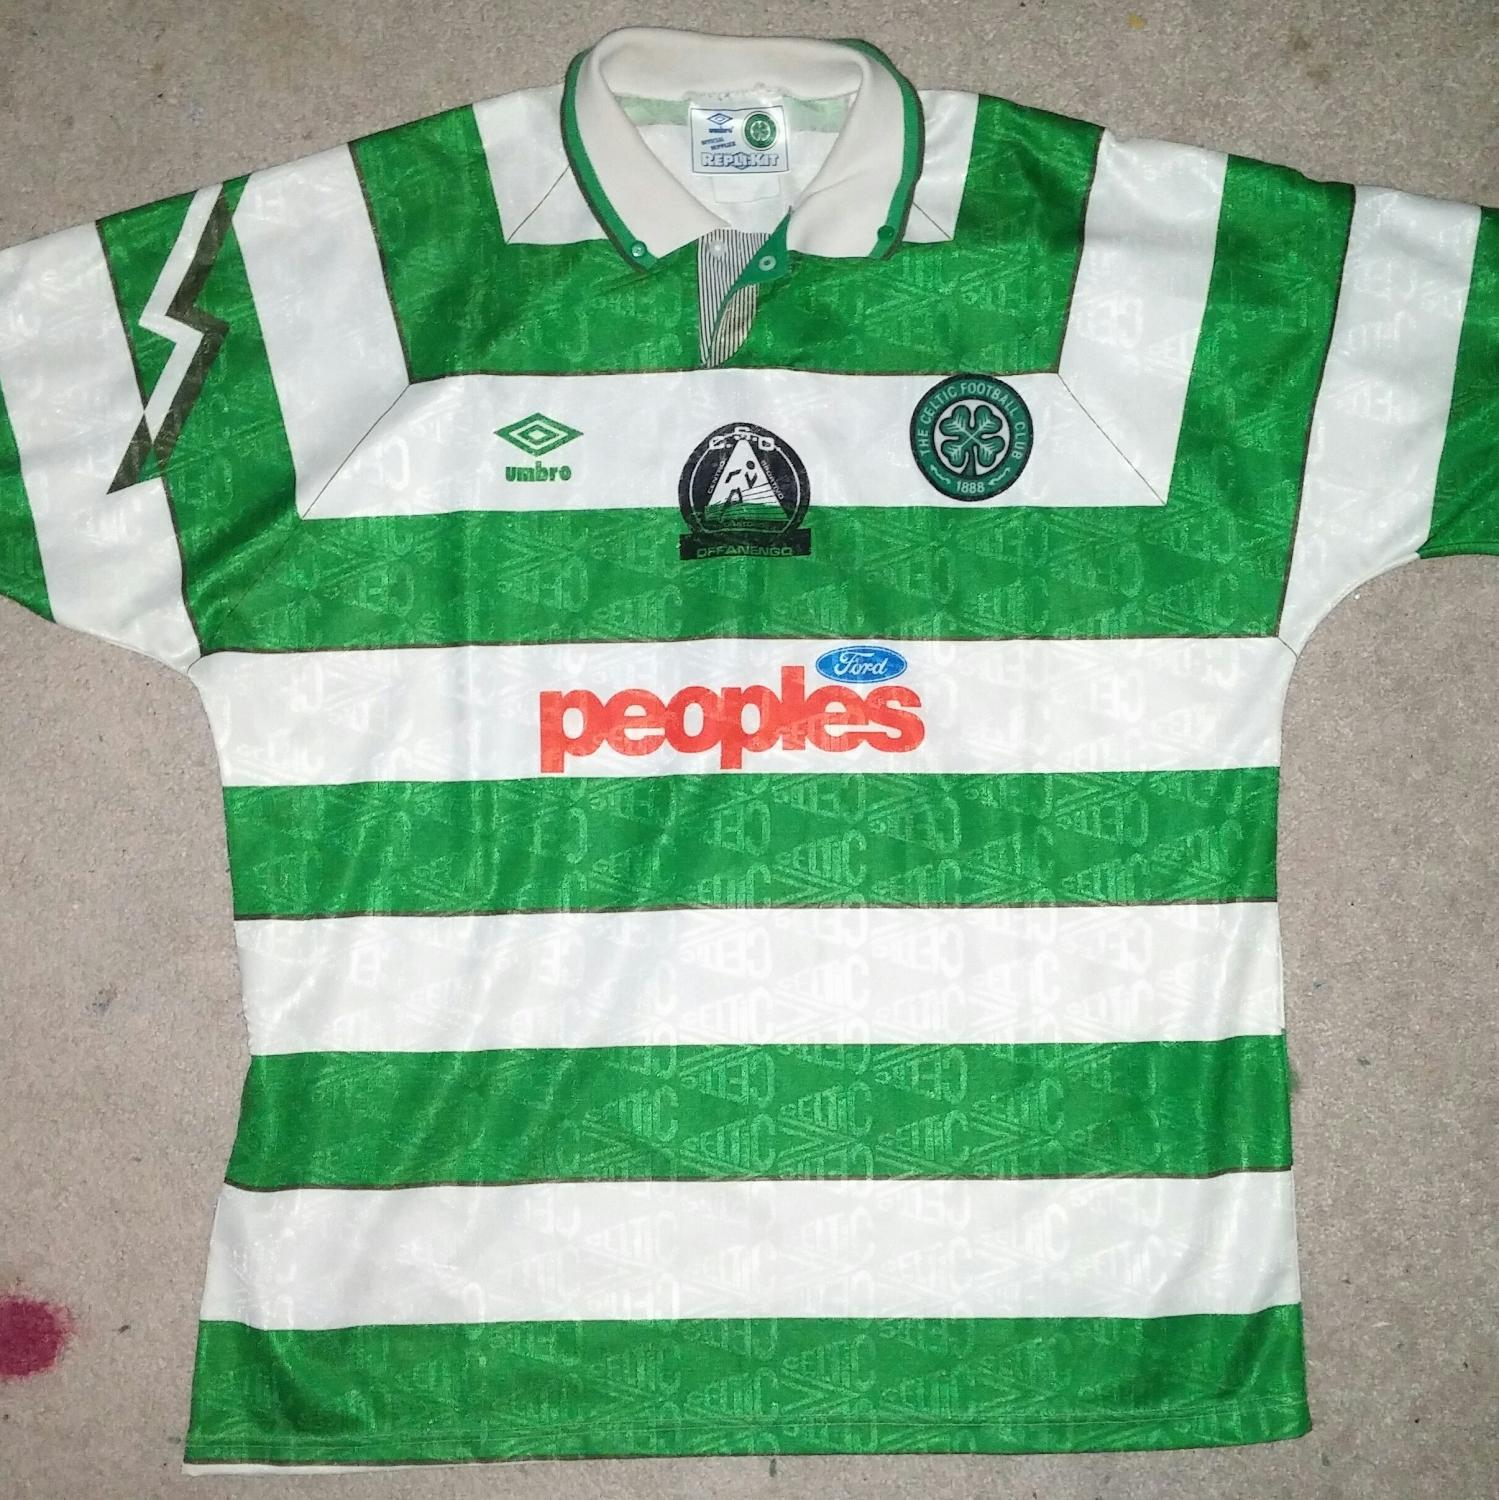 f15fa99596f20 Celtic Home Maillot de foot 1991 - 1992. Sponsored by Peoples Ford